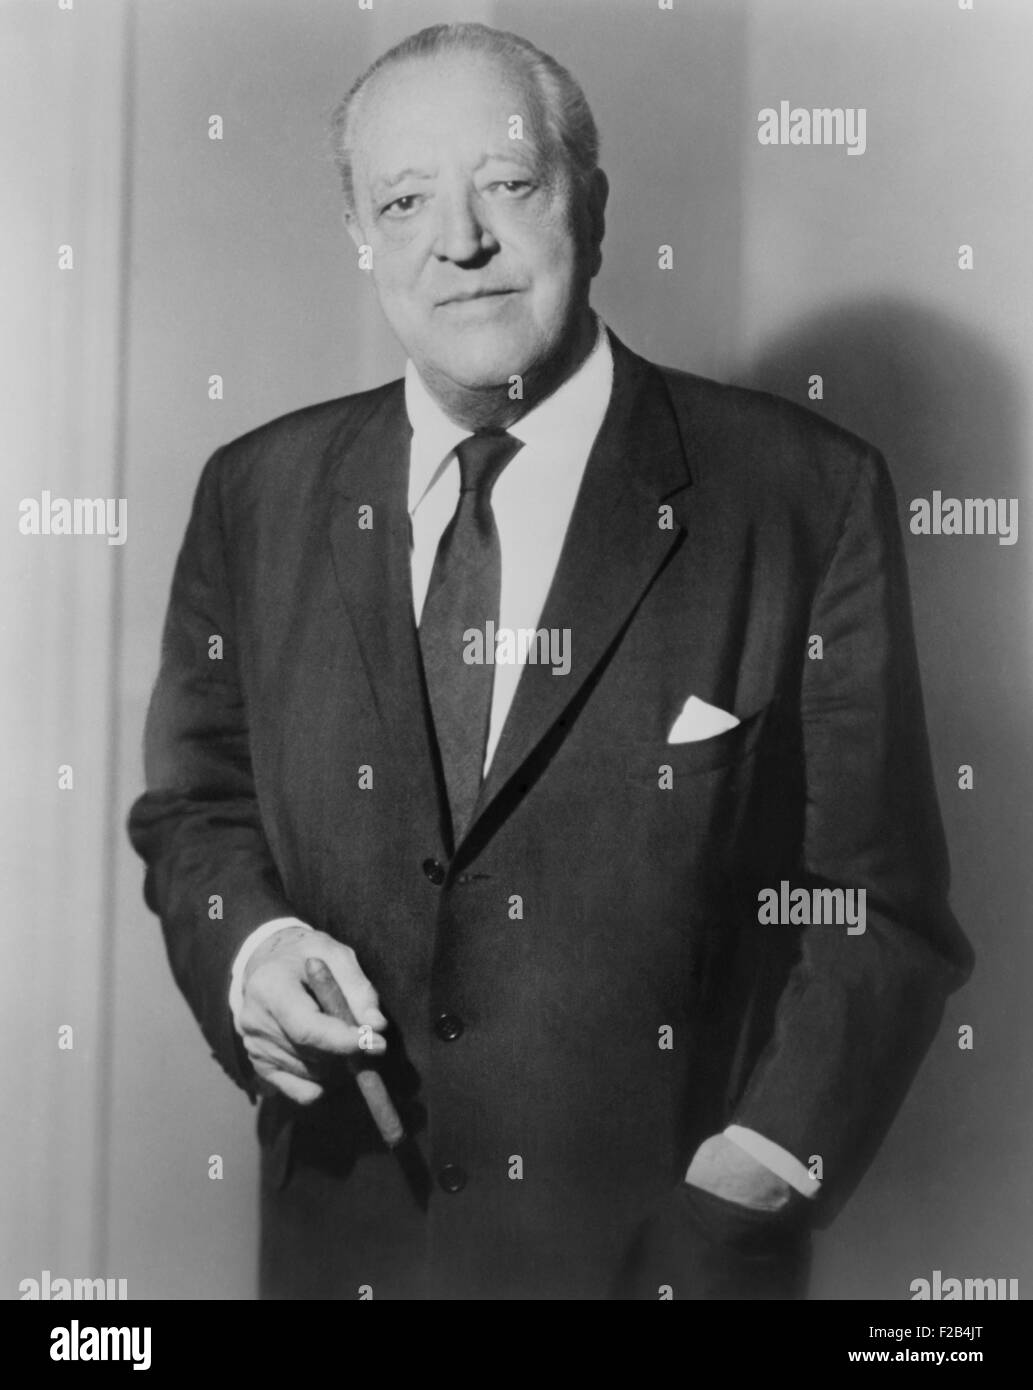 ludwig mies van der rohe stock photos ludwig mies van der rohe stock images alamy. Black Bedroom Furniture Sets. Home Design Ideas